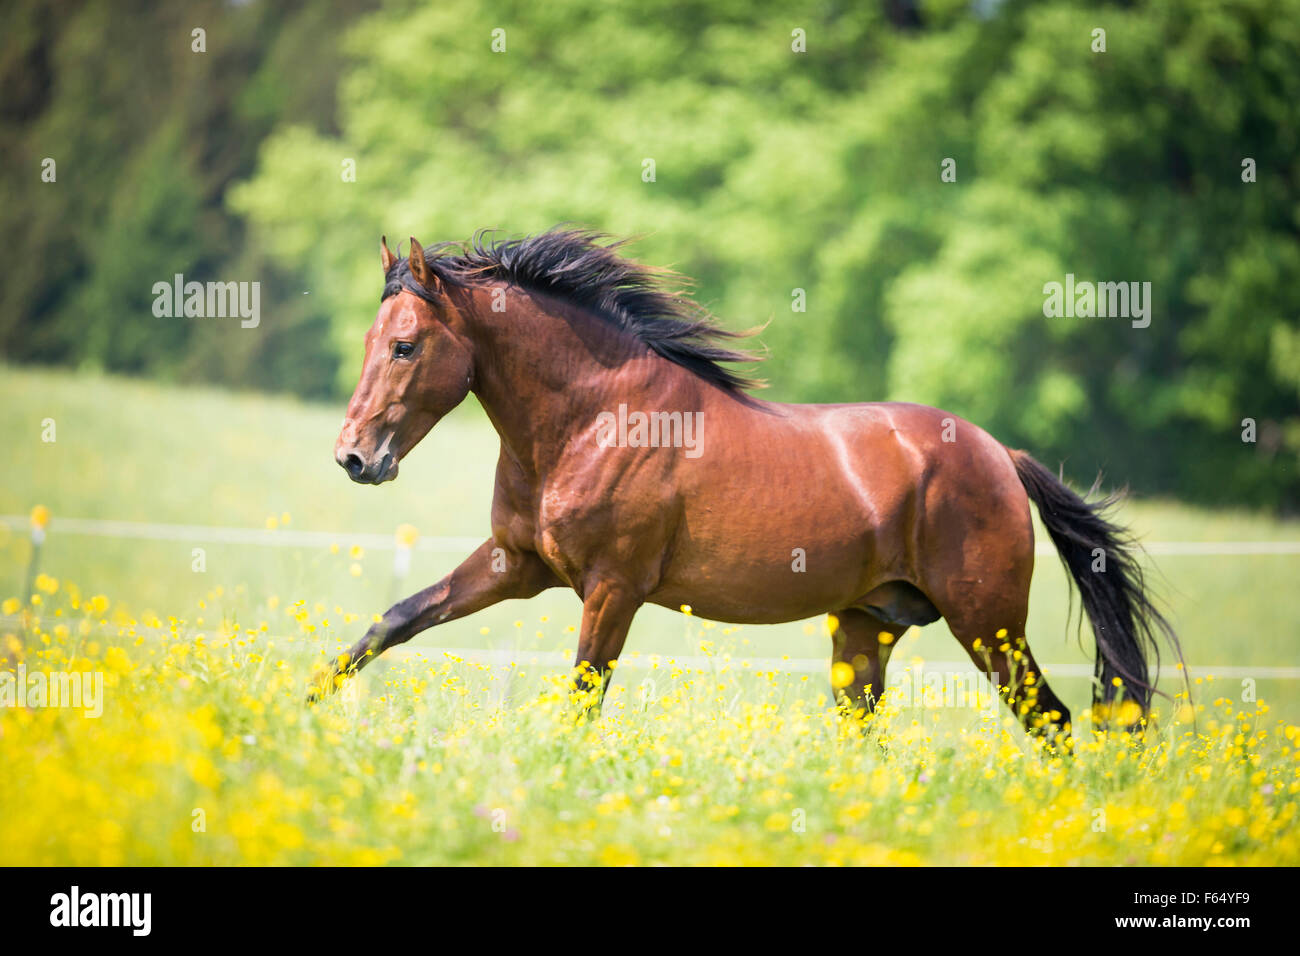 Paso Iberoamericano. Bay stallion galloping on a pasture. Germany - Stock Image